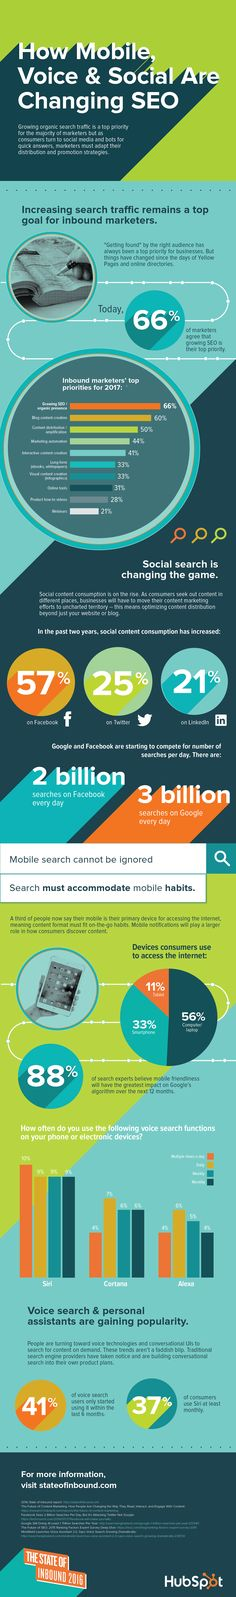 How Mobile, Voice & Social Are Changing SEO - #Infographic